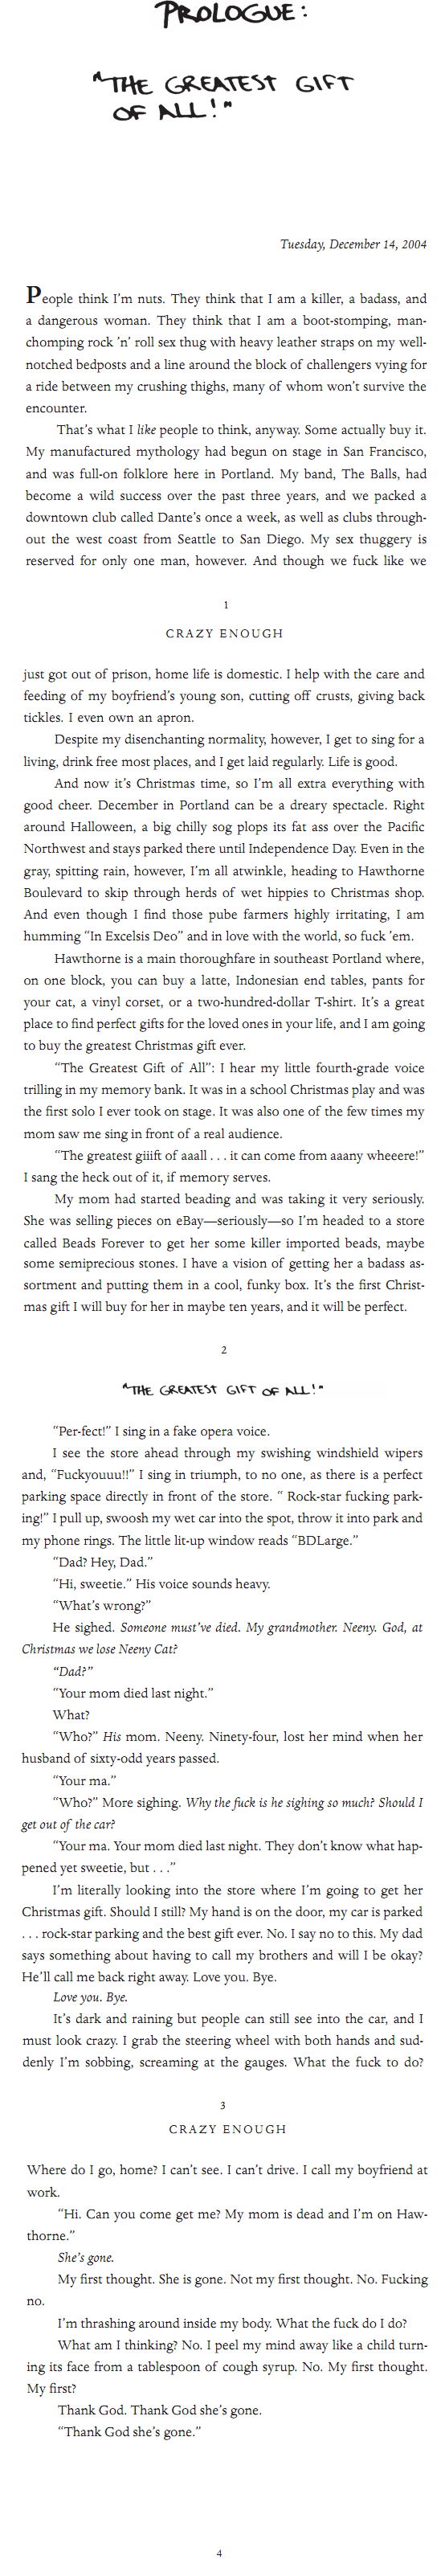 * Excerpted from CRAZY ENOUGH: A Memoir by Storm Large. Copyright 2012 by Storm Large. Published by Free Press. *